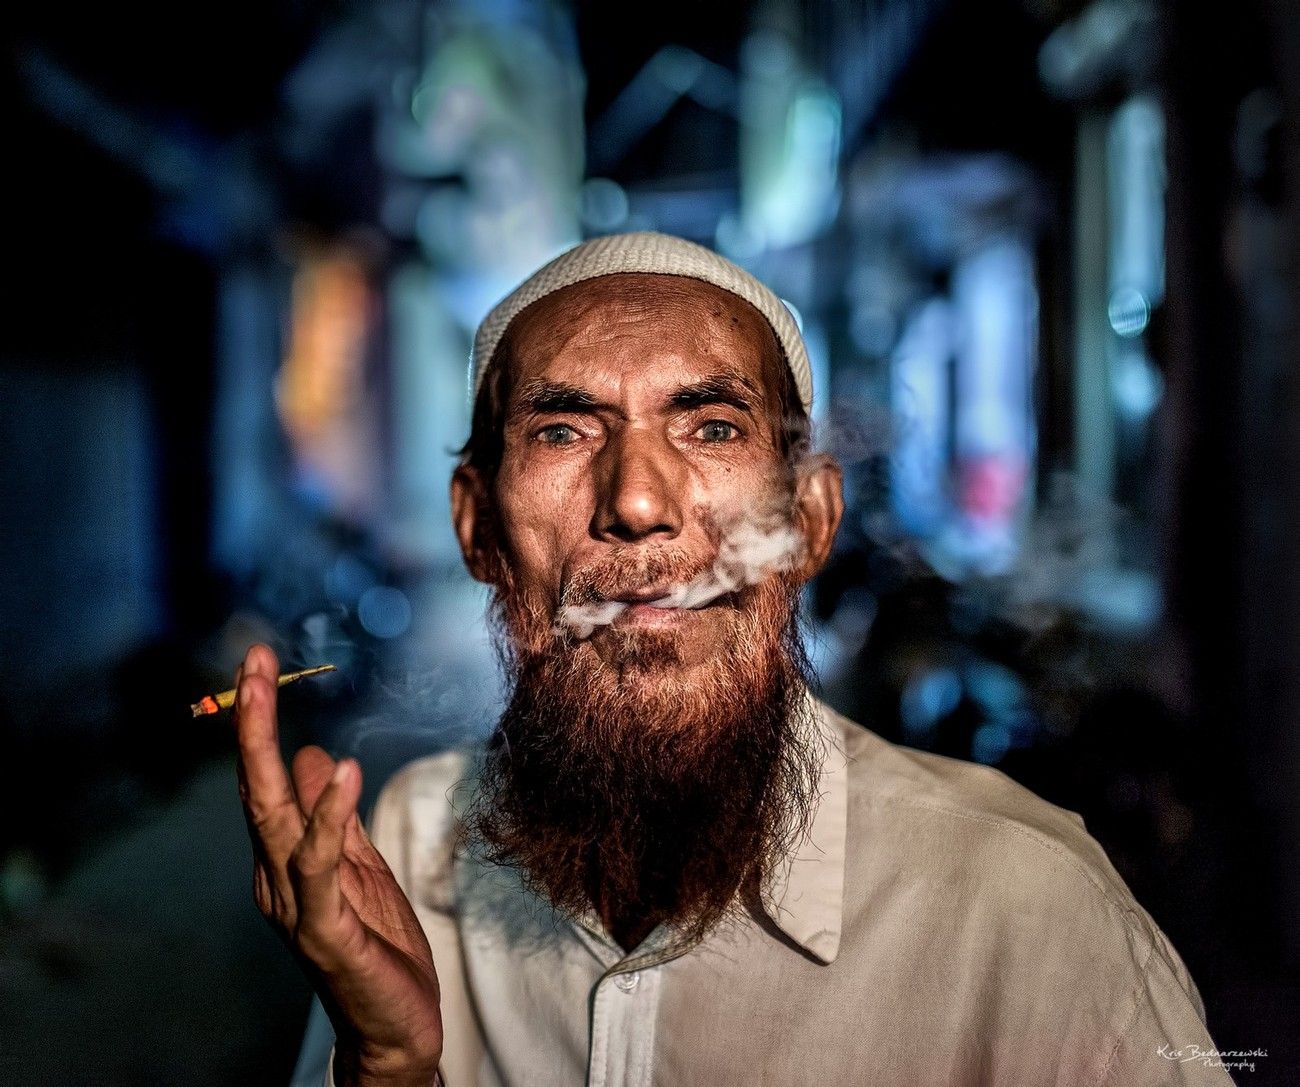 99+ Photos That Will Show You The Cultures of the World